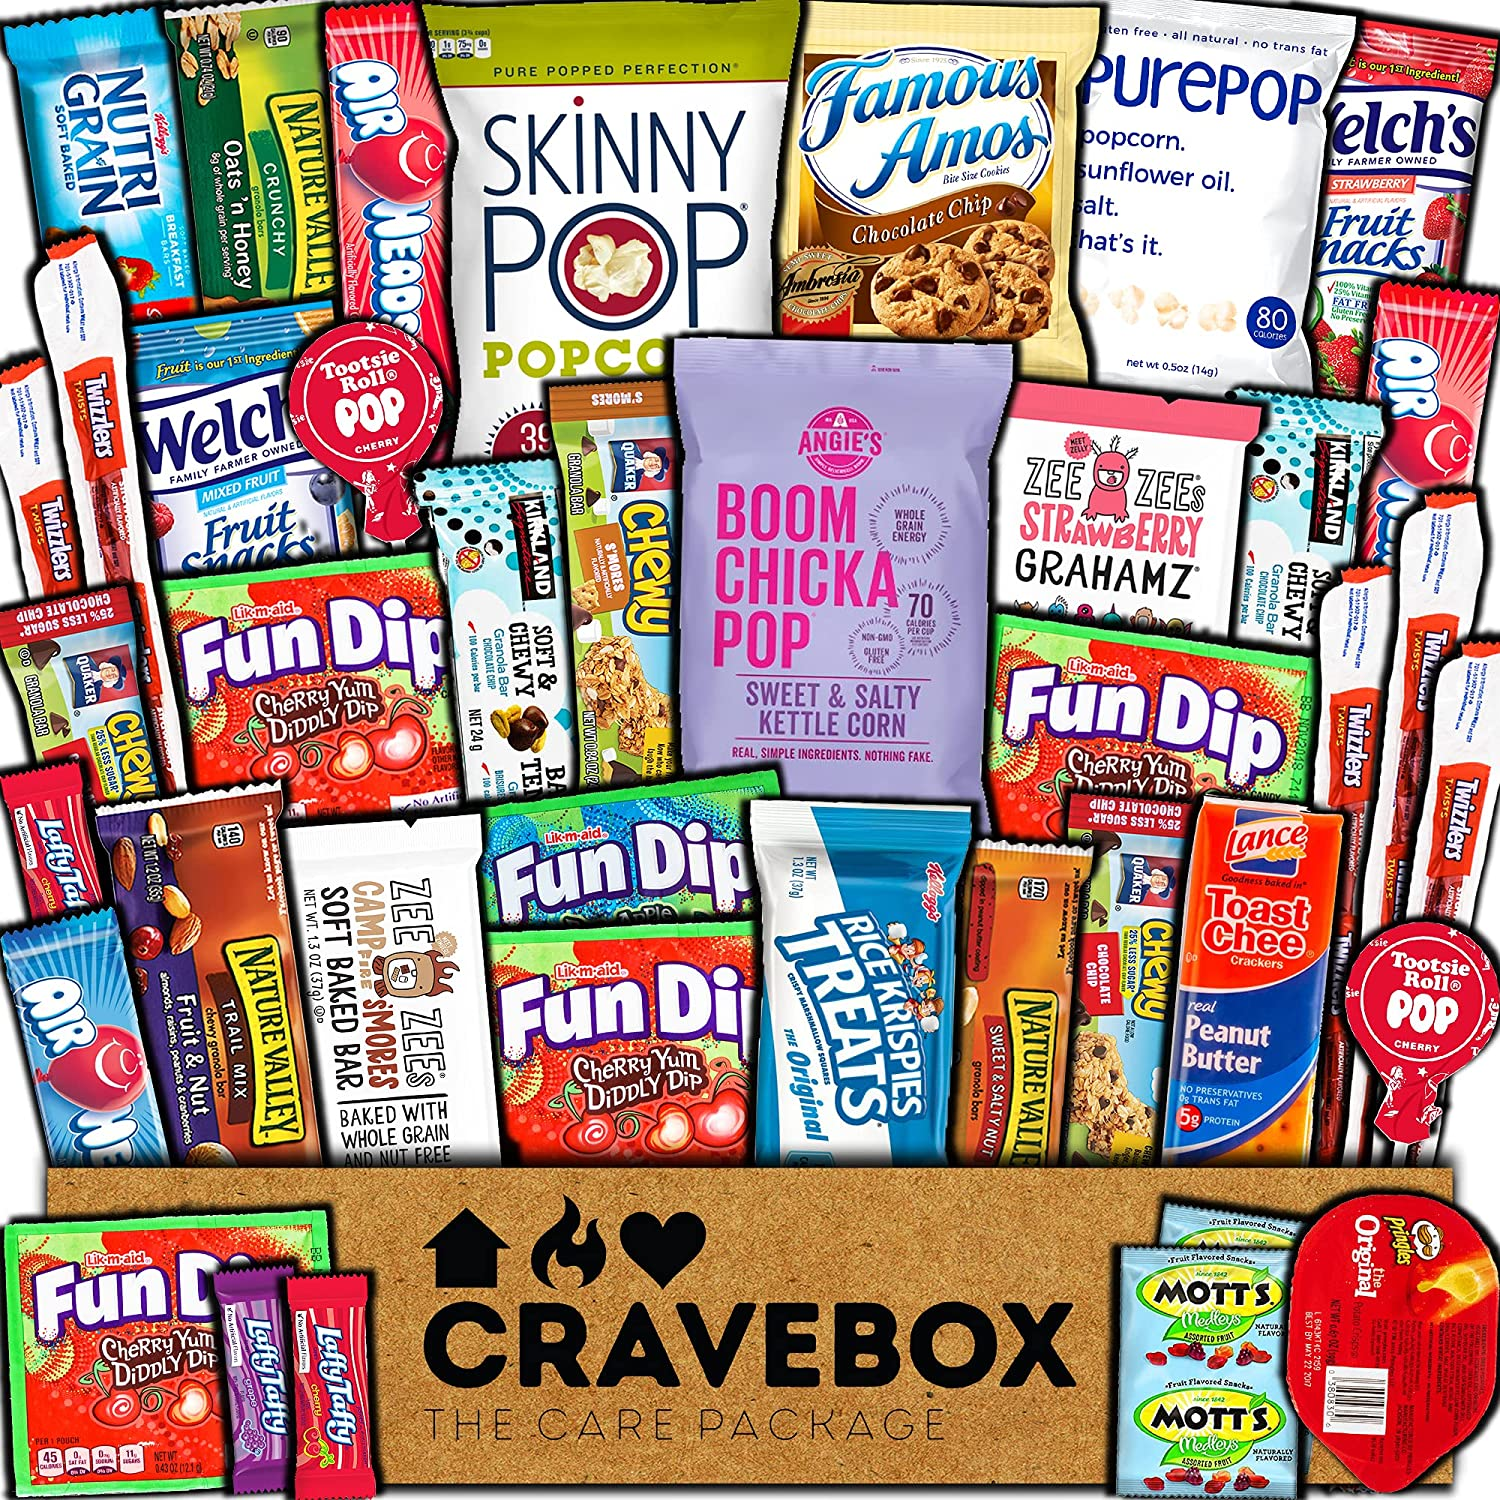 CraveBox Care Package (40 Count) Healthy Snacks Food Cookies Health Bar Chips Candy Nutritious Variety Gift Box Pack Assortment Basket Bundle Mix Sampler Treat College Students Exam Office Back to School